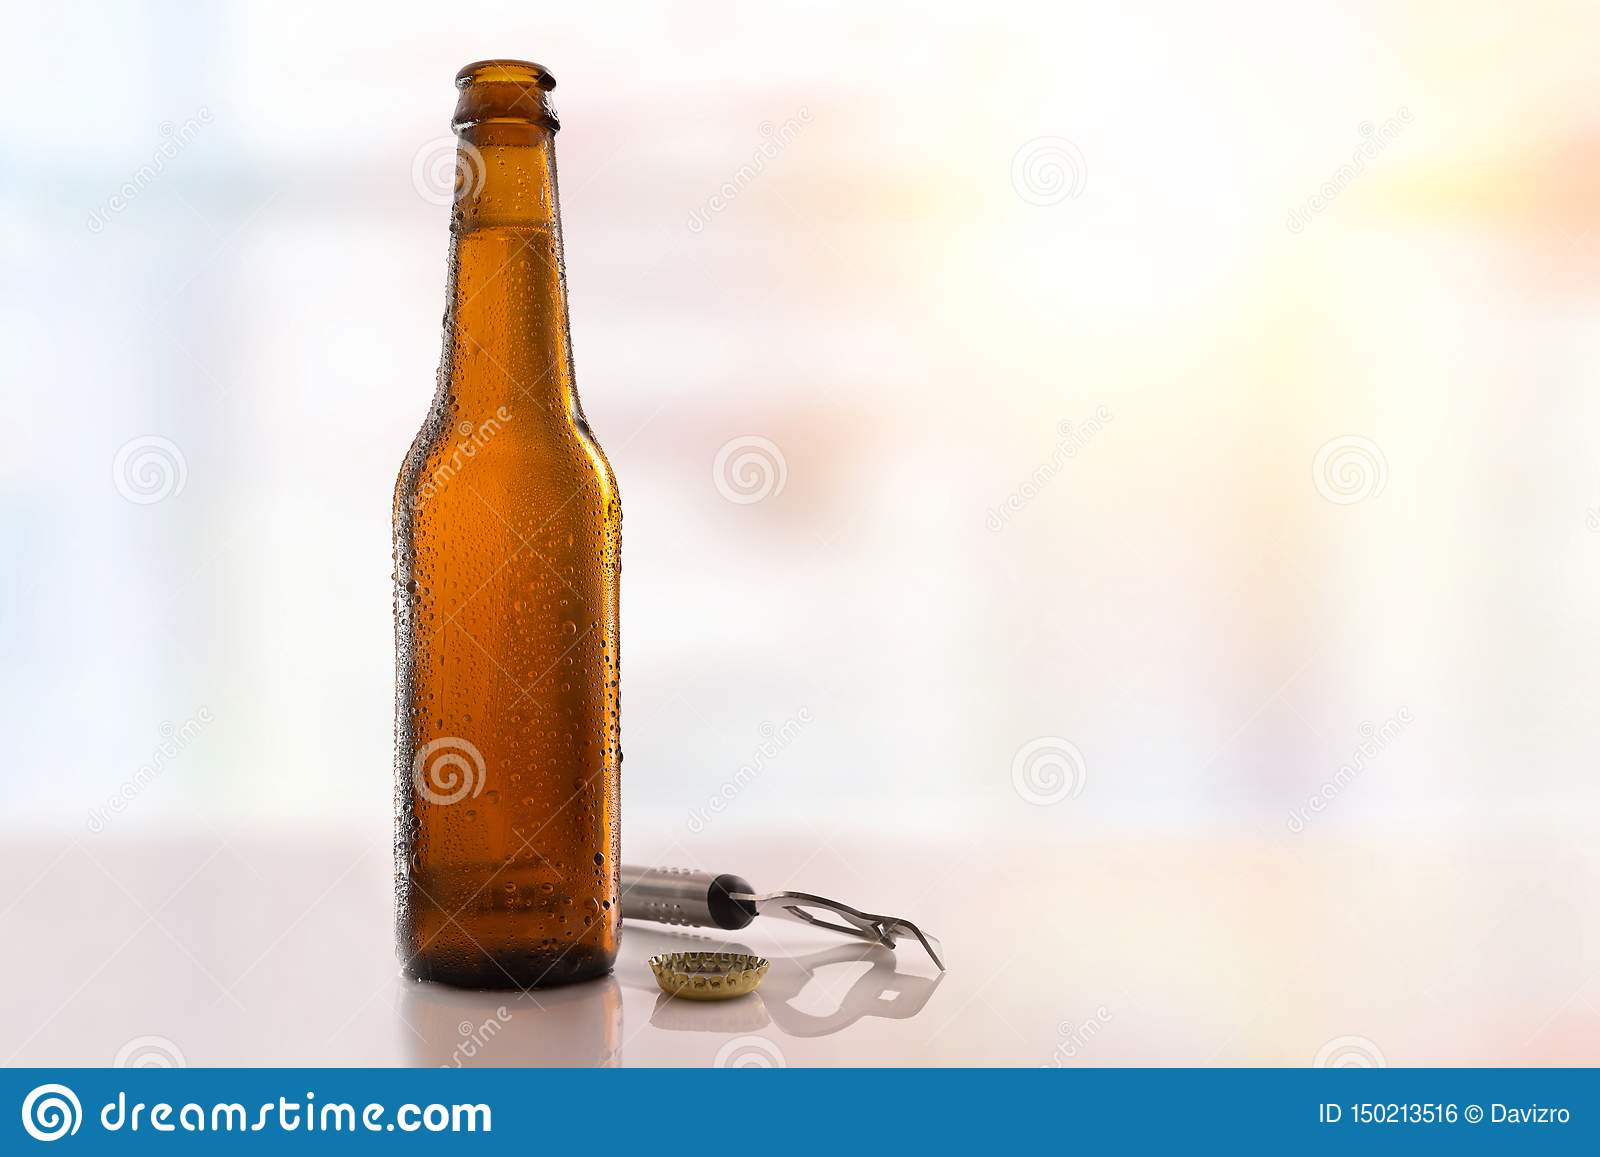 Beer bottle filled and open on glass table light background